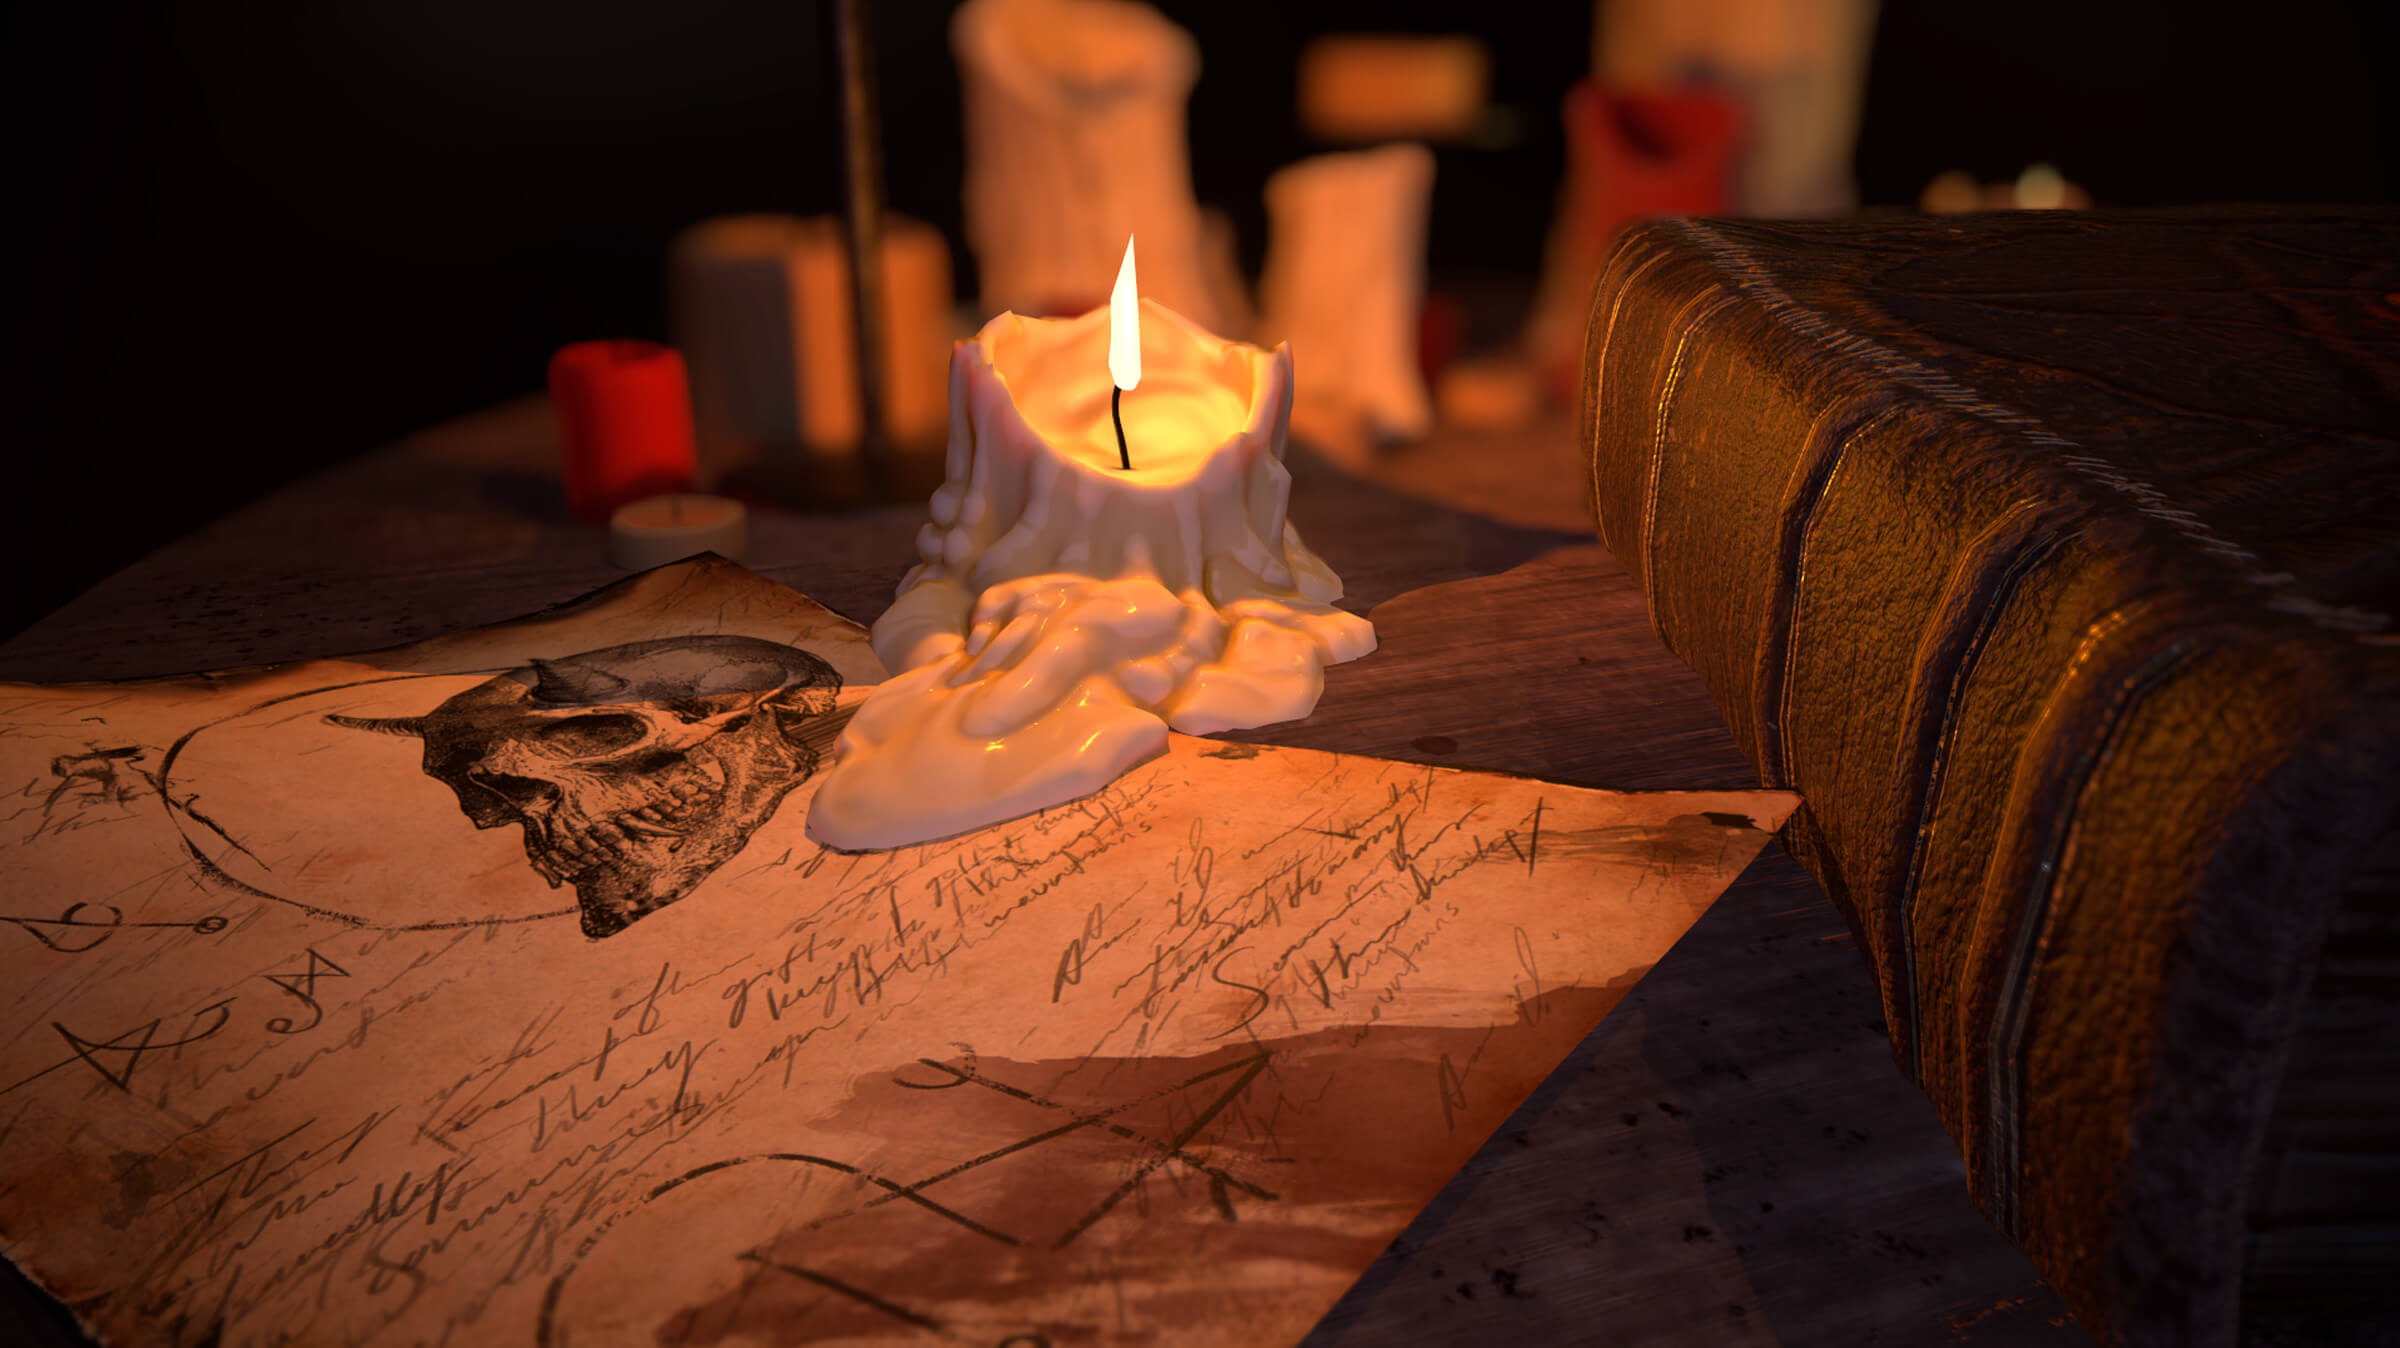 computer-generated 3D environment featuring a melting, lit candle dripping wax on a skull-adorned parchment